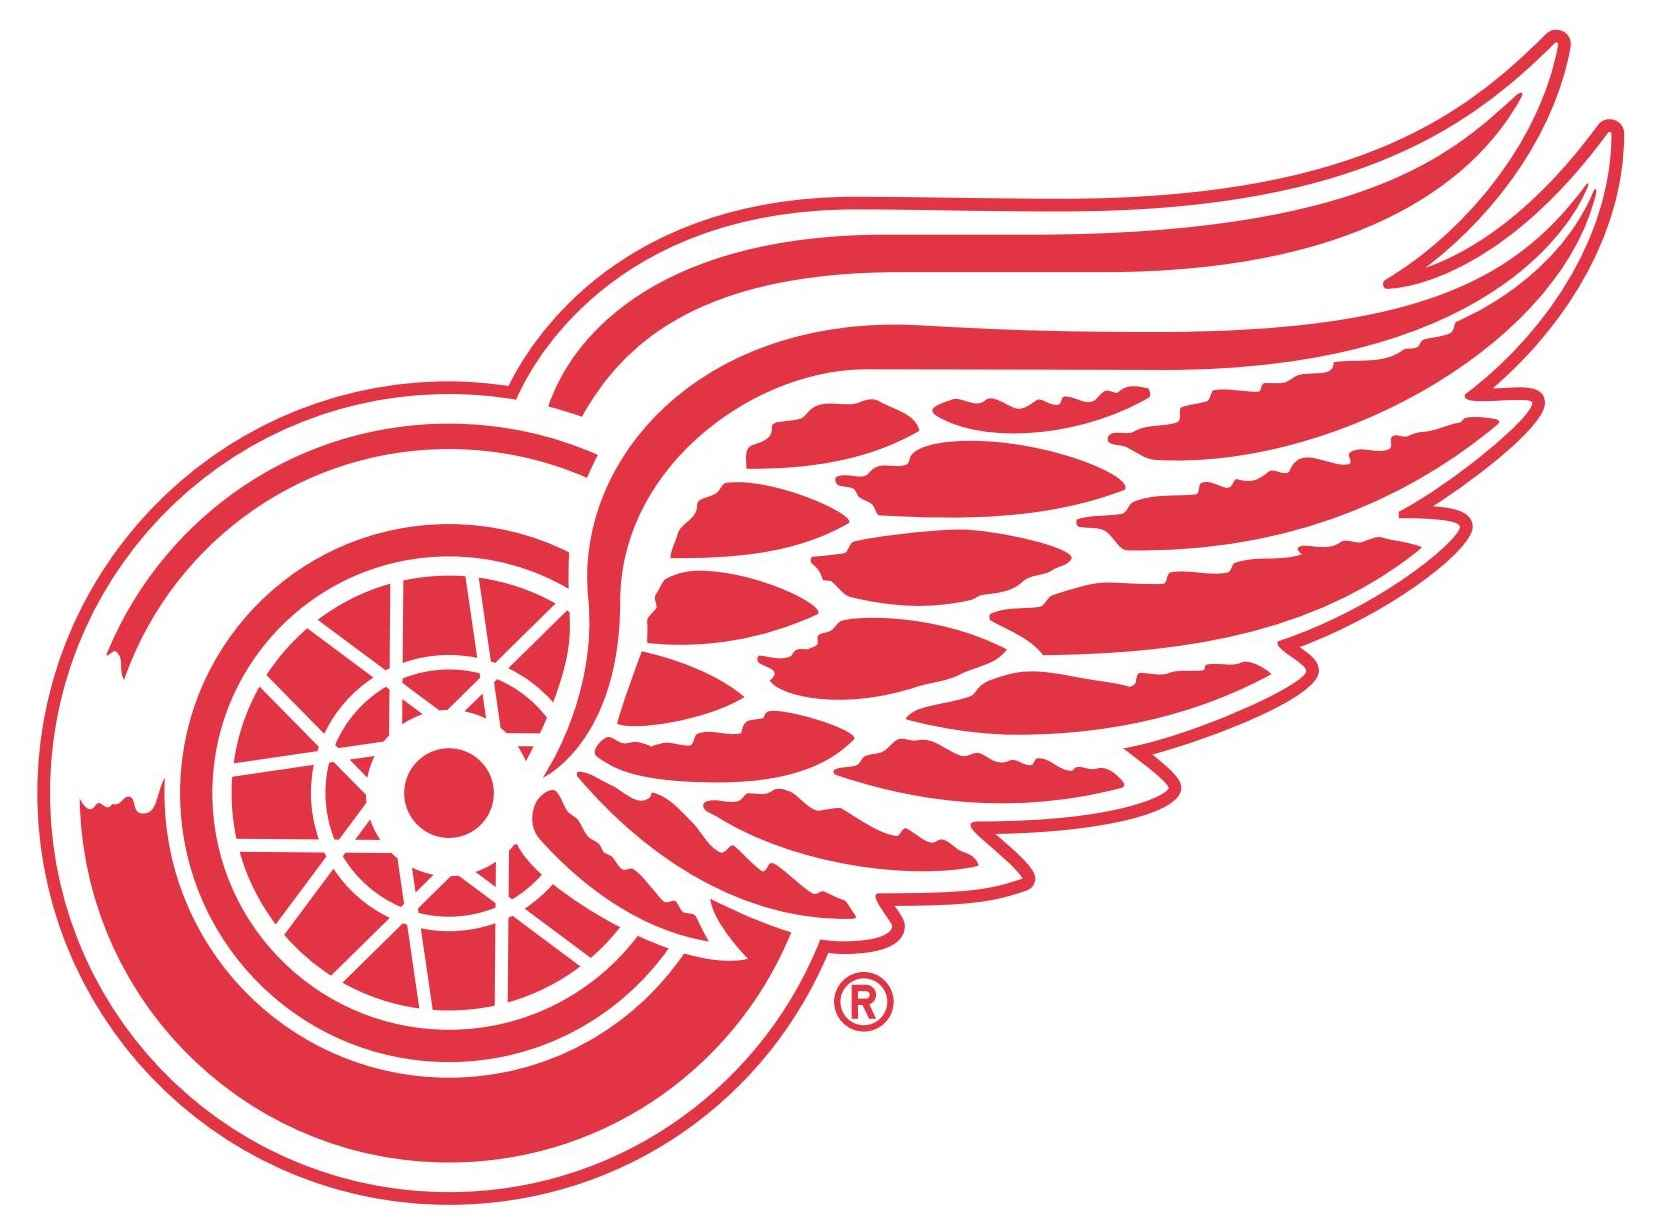 Detroit Red Wings Logo [EPS – NHL] Vector EPS Free Download, Logo, Icons, Brand Emblems